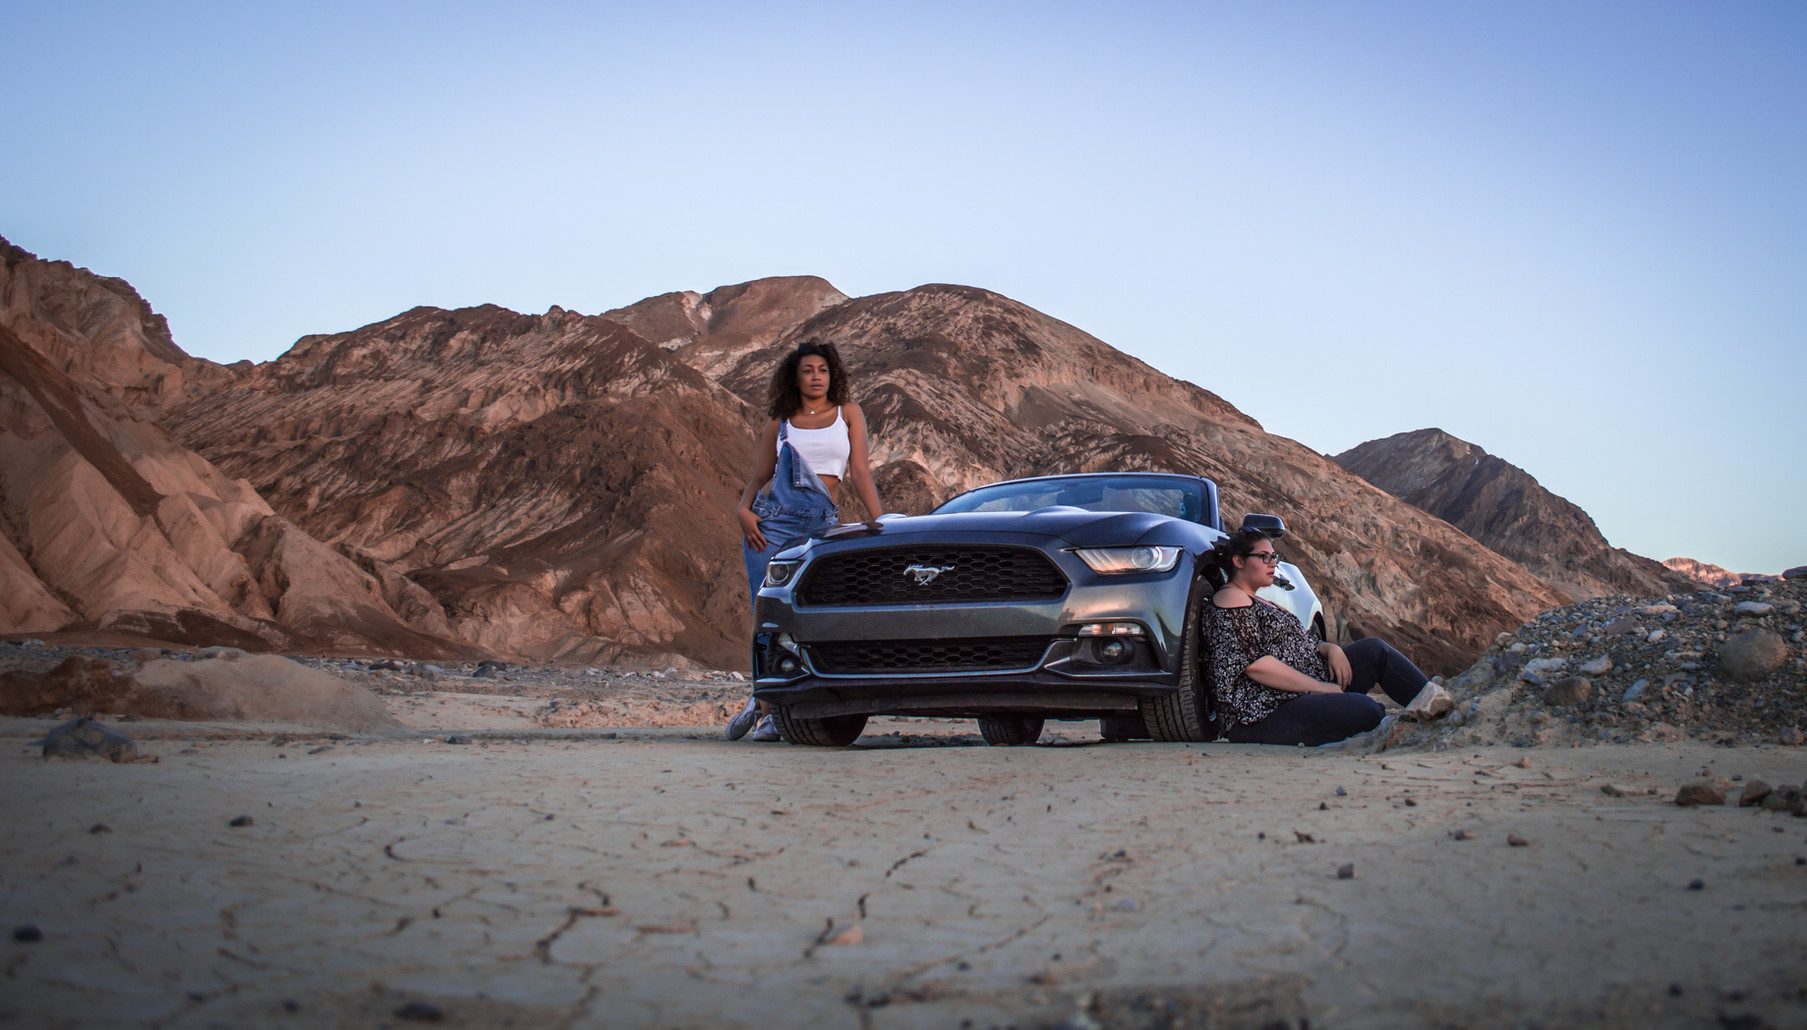 Two girls and their Mustang in Badwater, Death Valley, California.